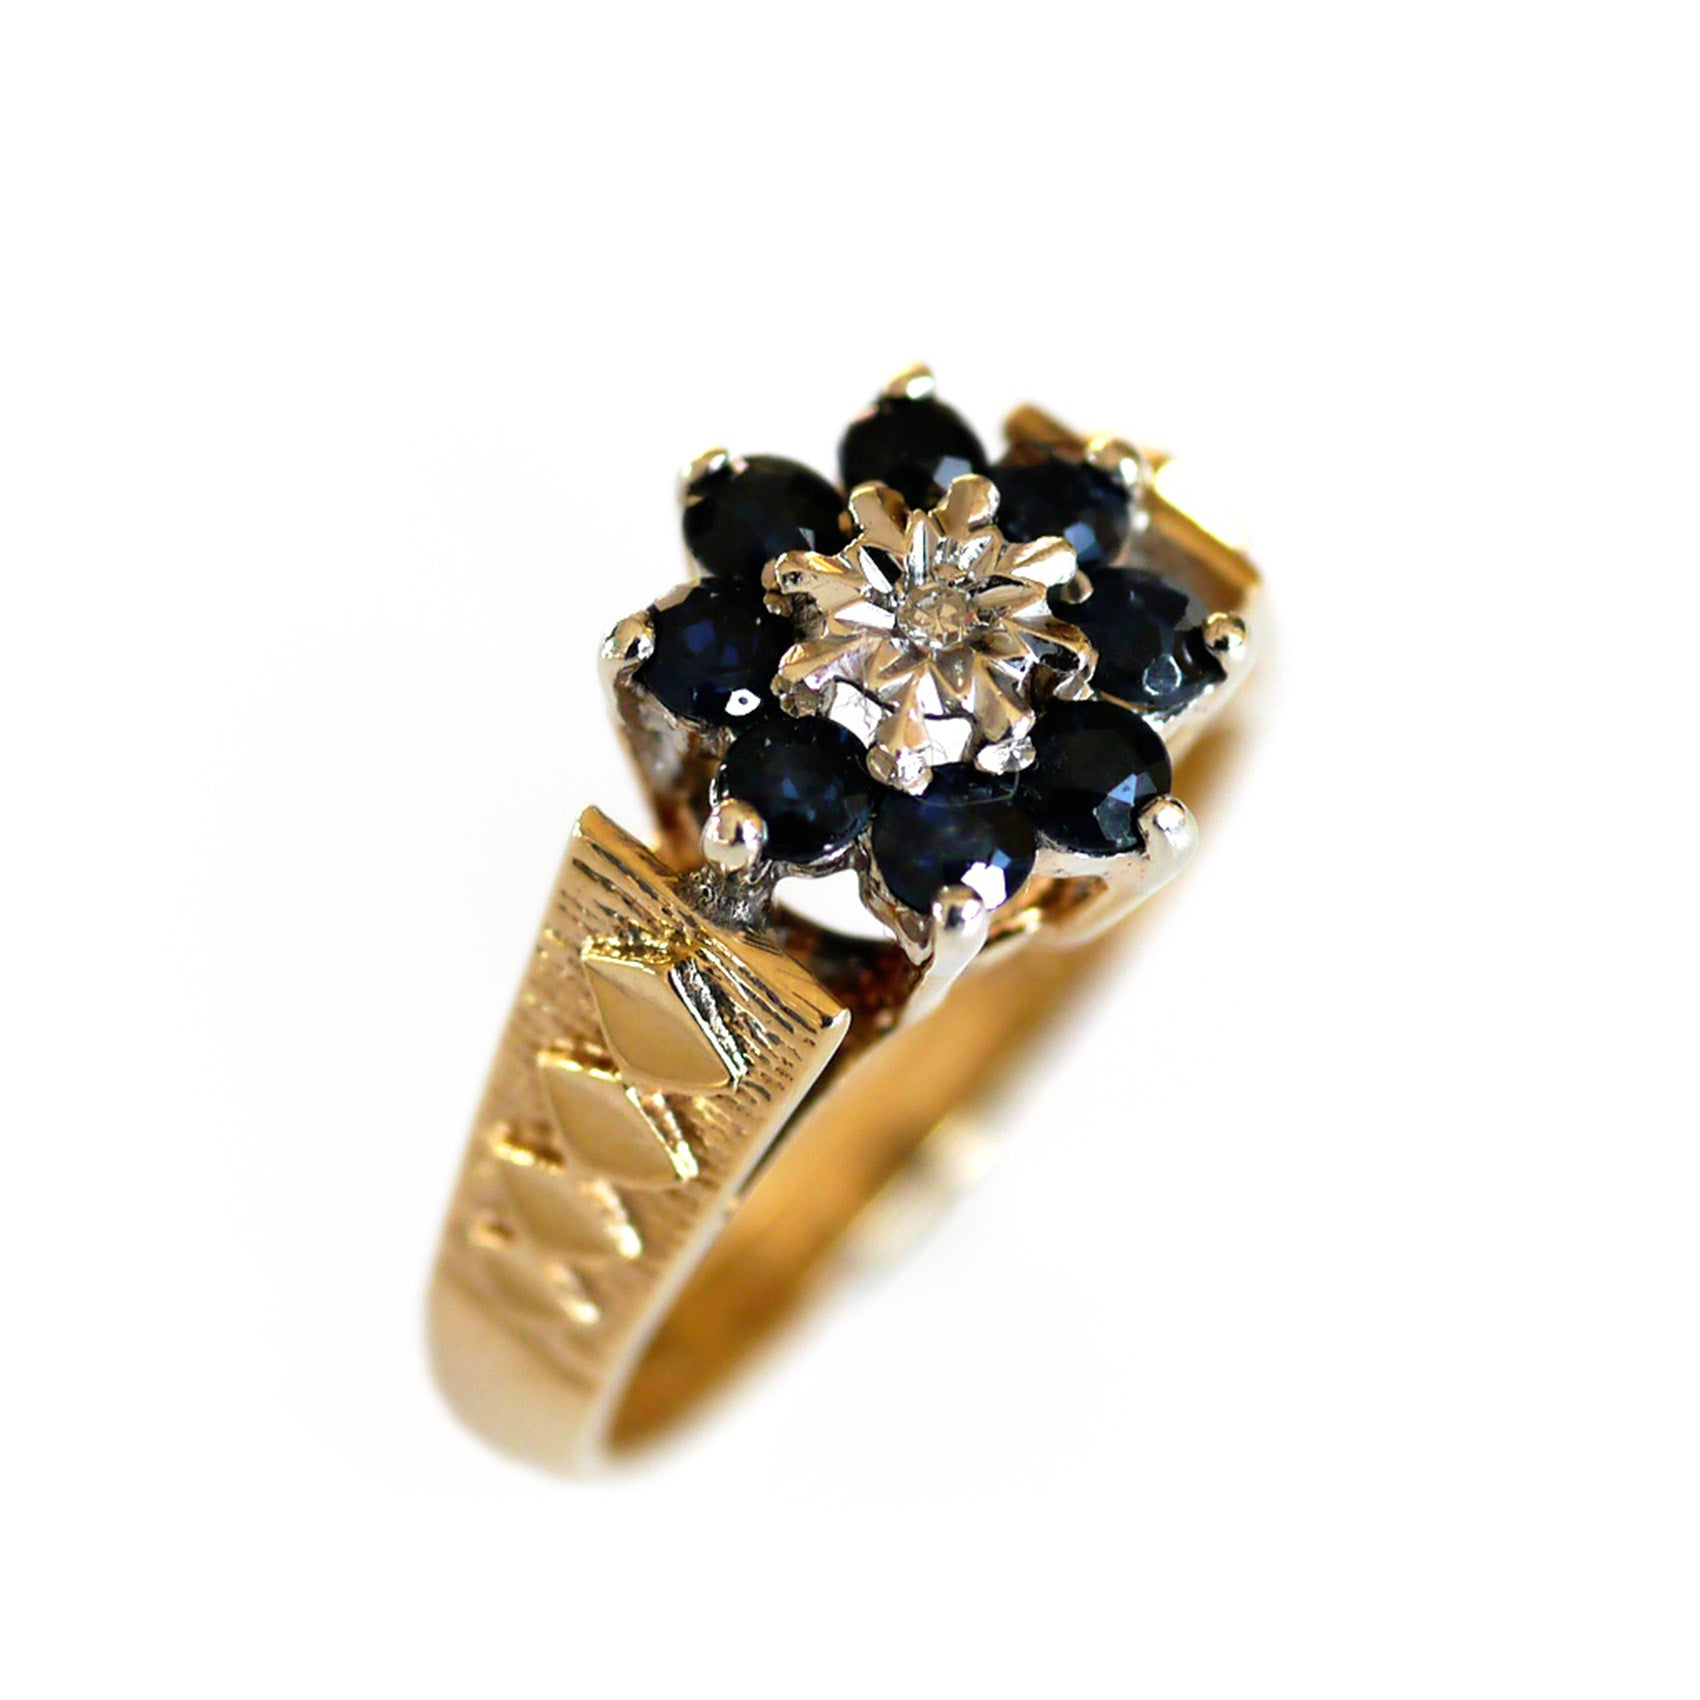 Dazzling Diamond and Sapphire 1970s Ring